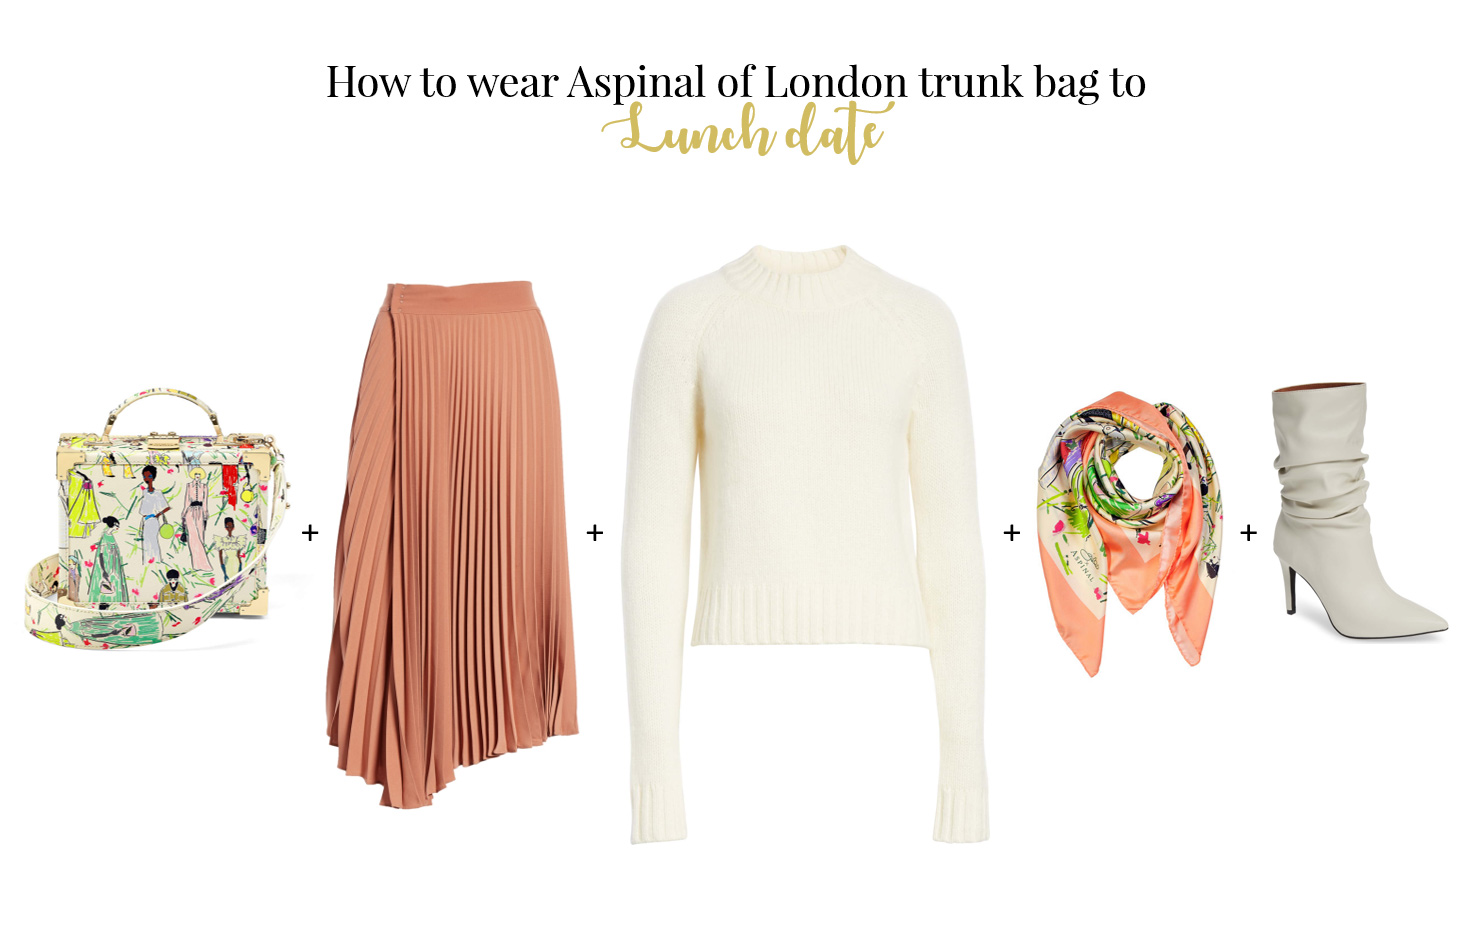 How to wear trunk bag for date Aspinal of London